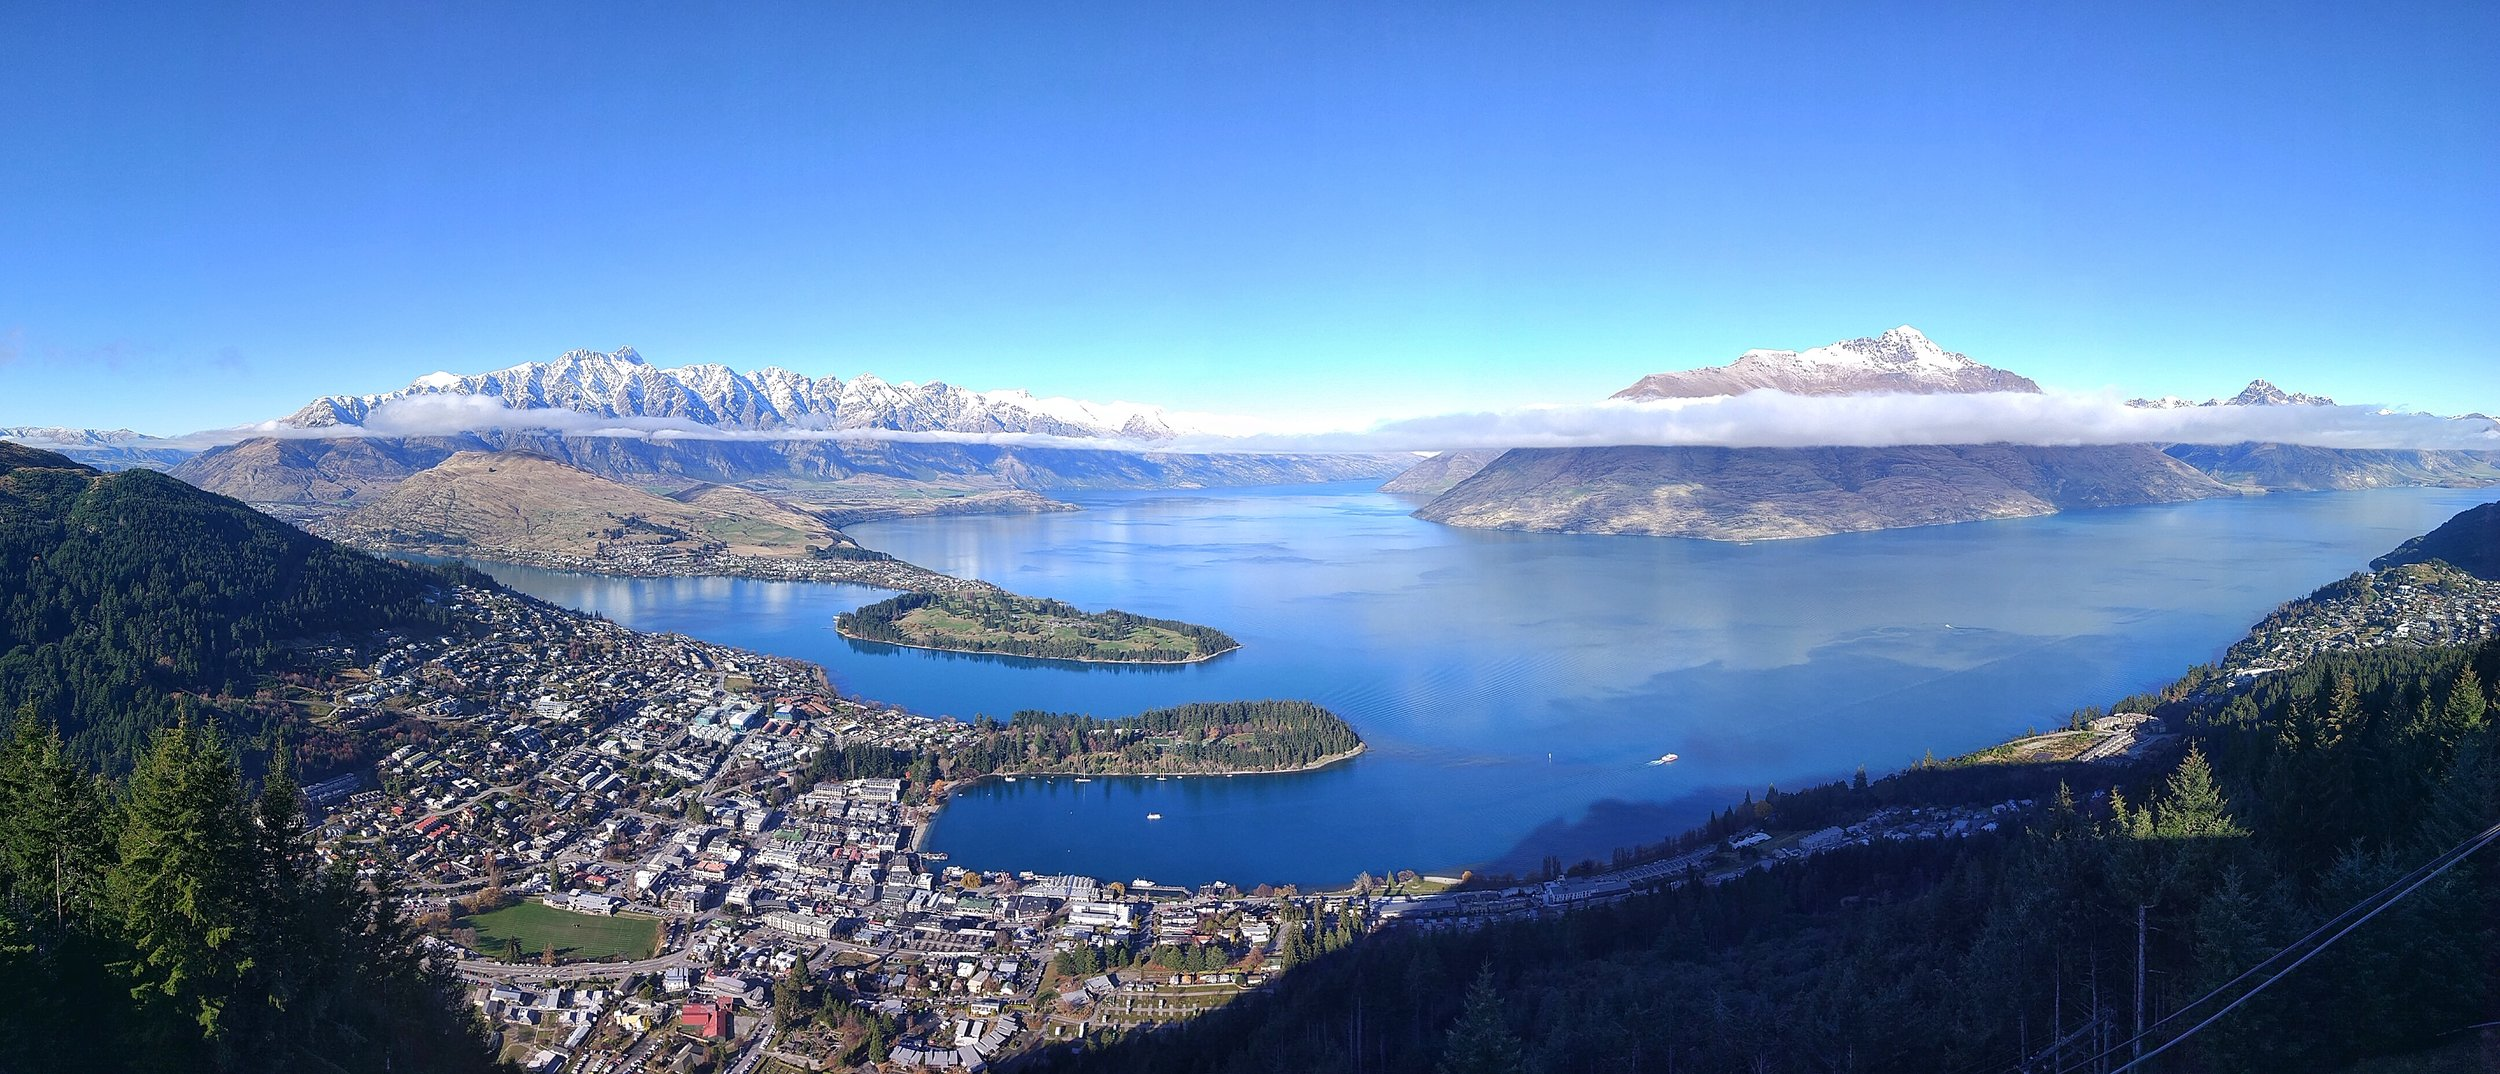 winter views: There are lots of cool things to do in queenstown in winter